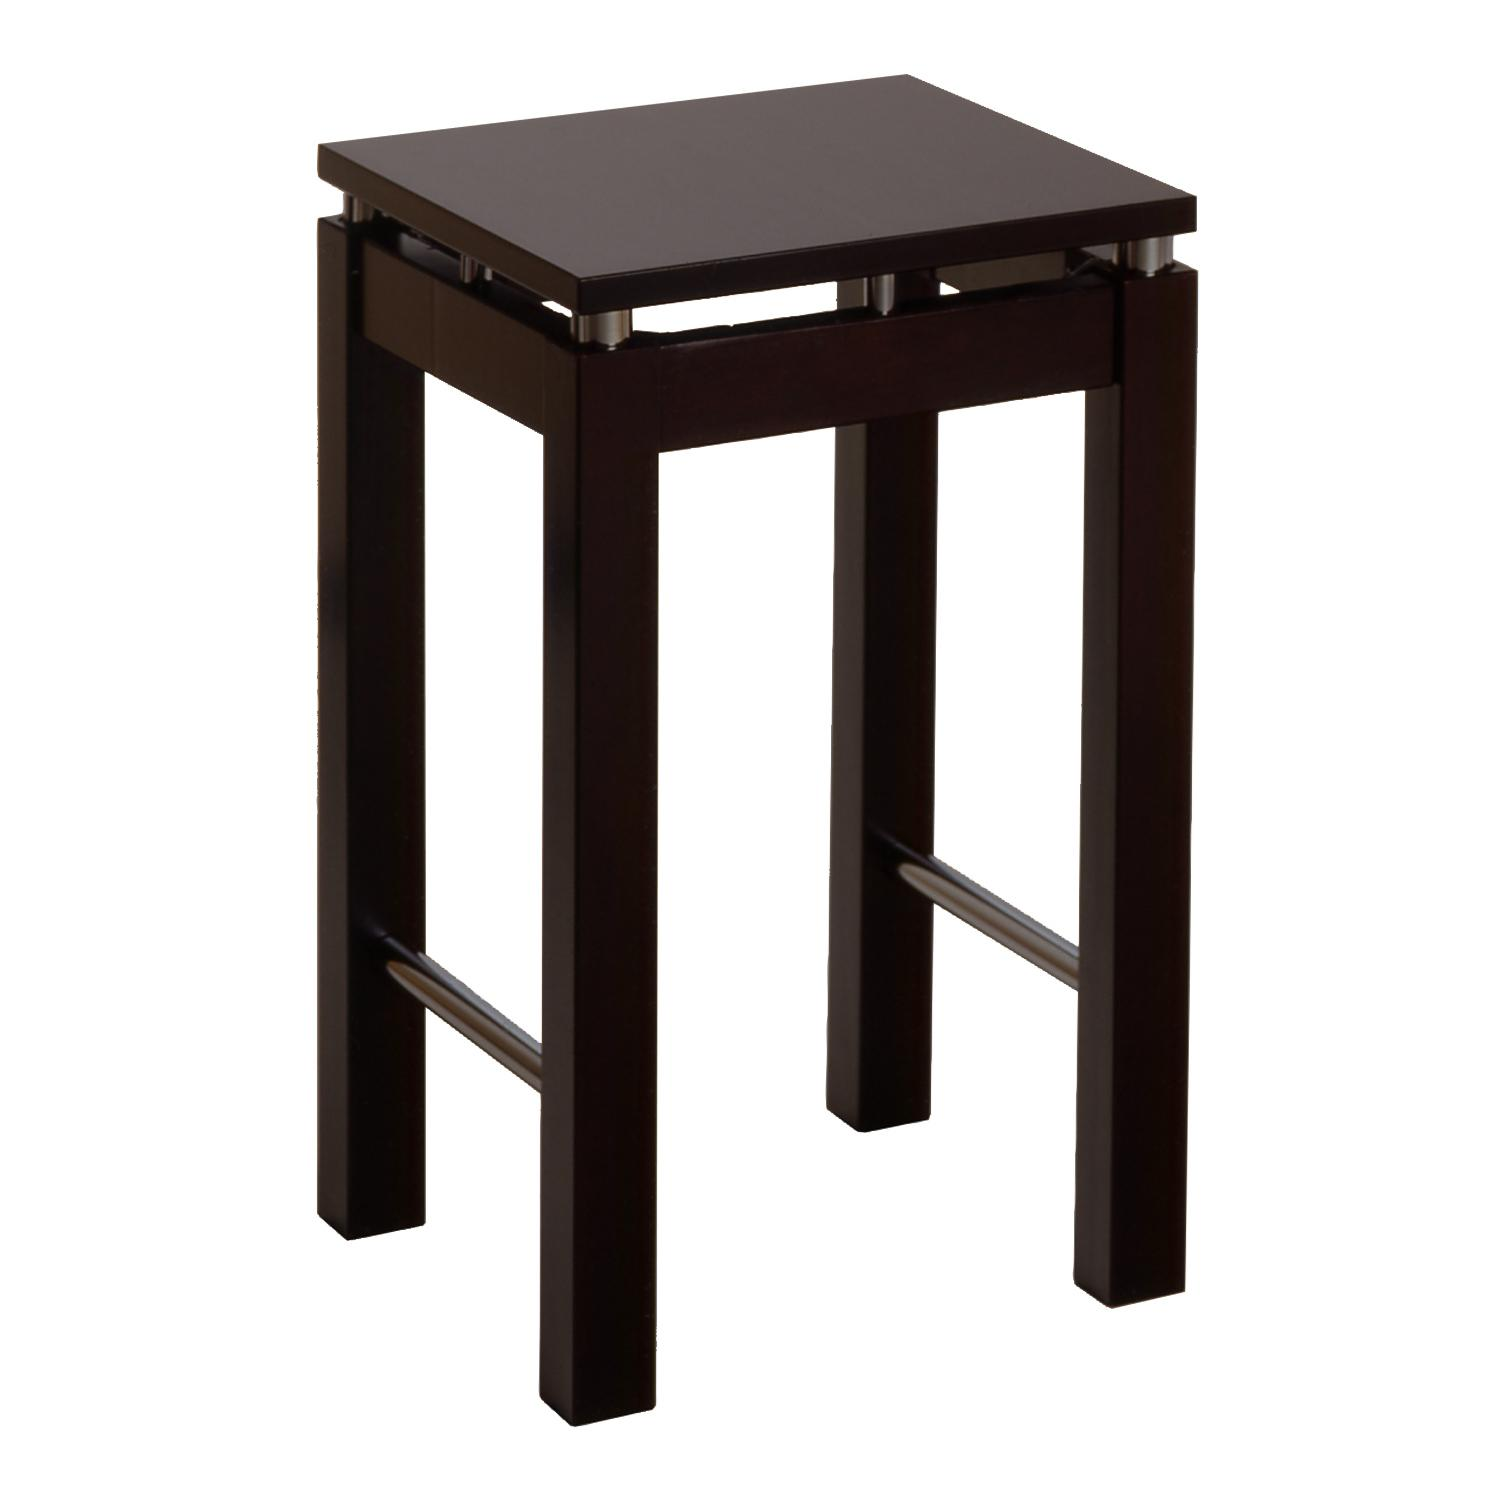 Amazoncom Winsome Wood 23 Inch Stool Espresso Kitchen Dining